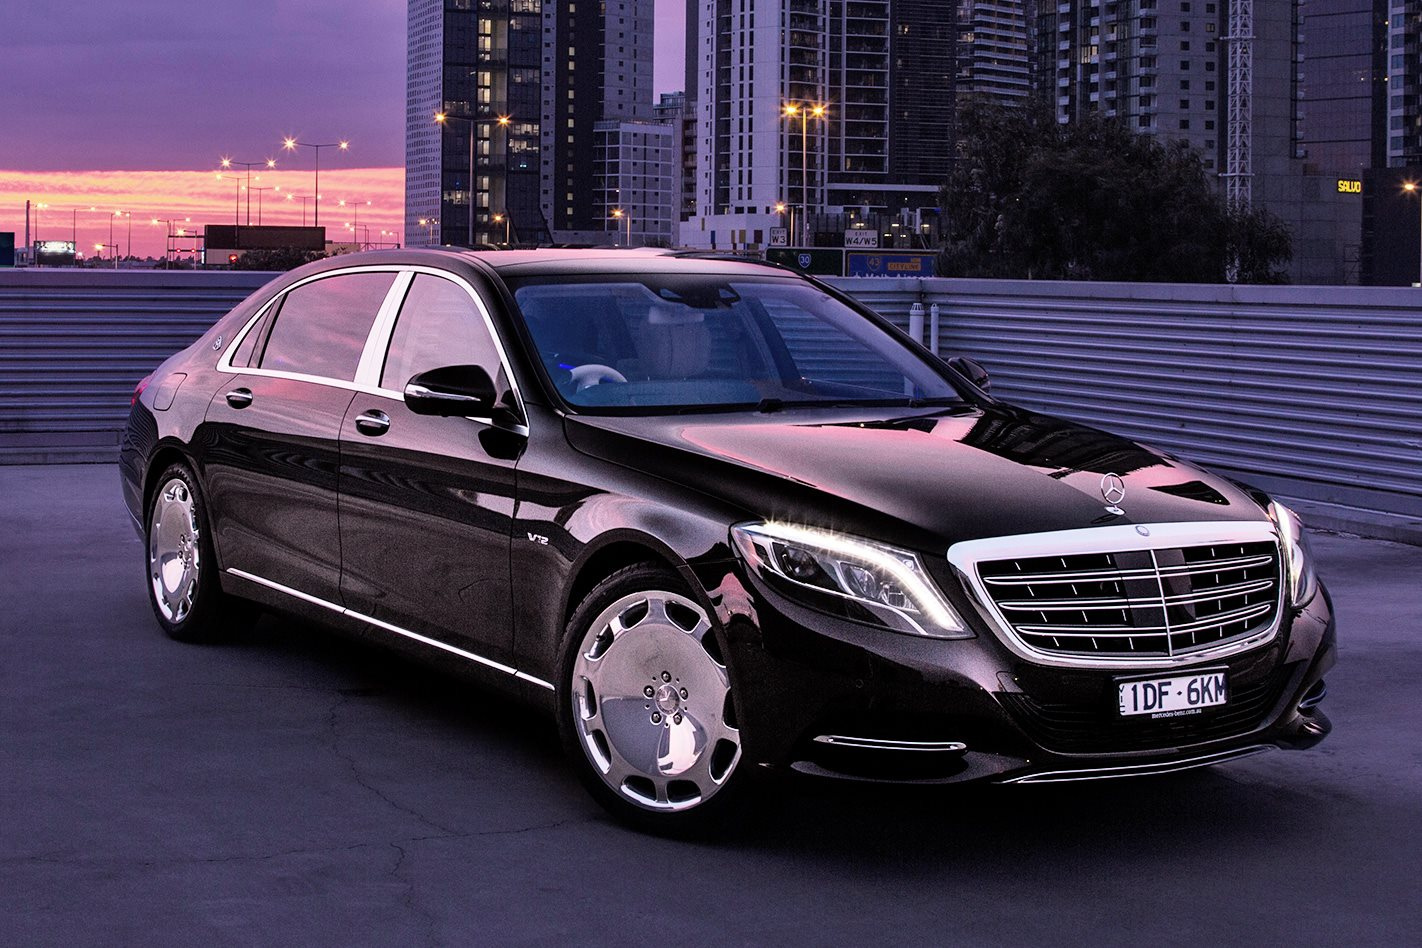 2015 Toyota Corolla For Sale >> Mercedes-Maybach S600 a sell-out in Australia